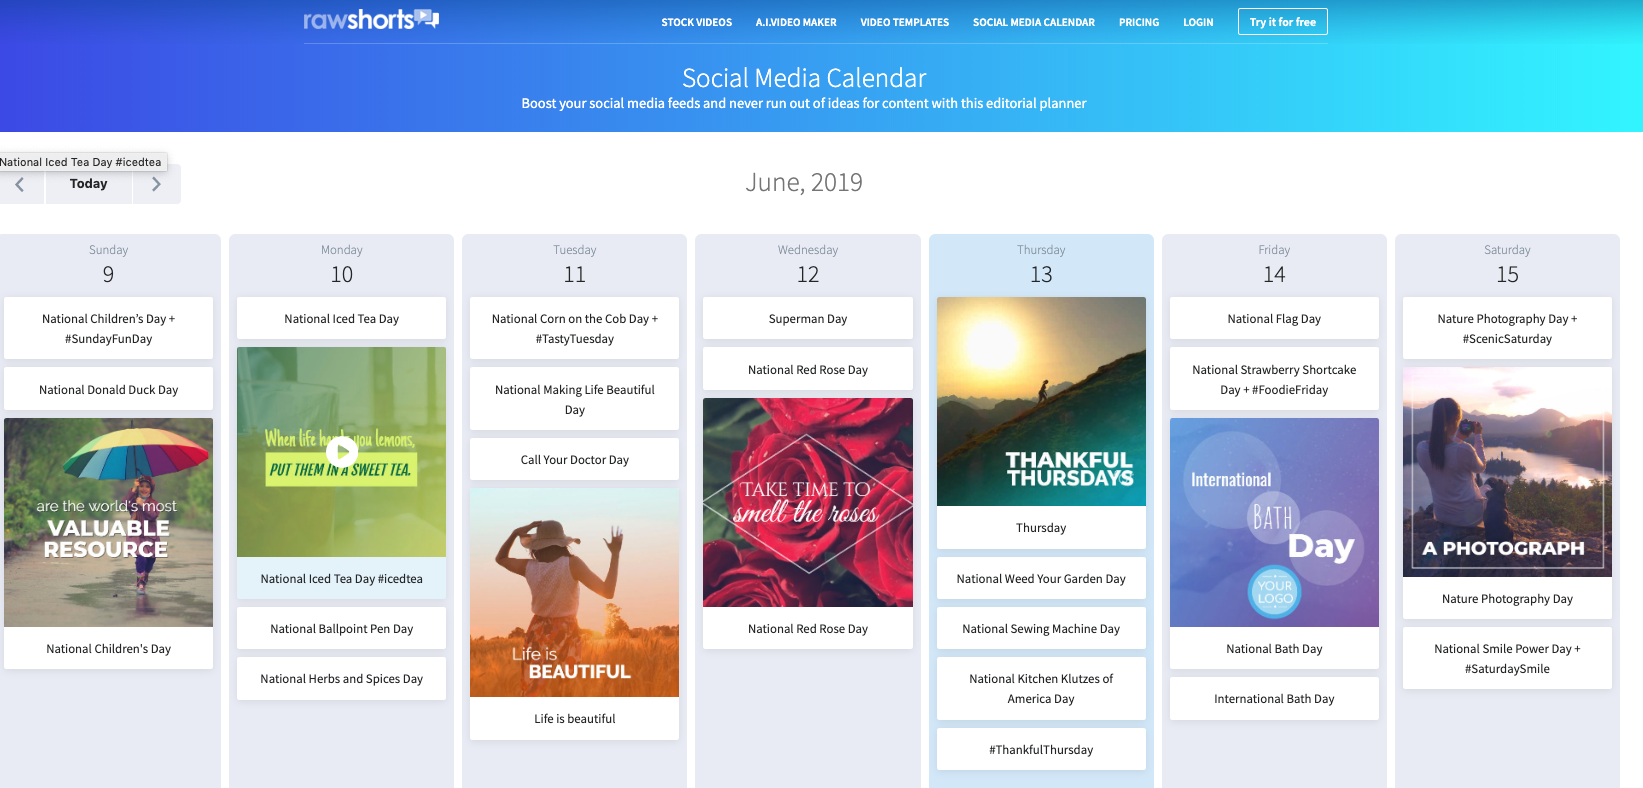 Sneak preview of the Raw Shorts social media calendar